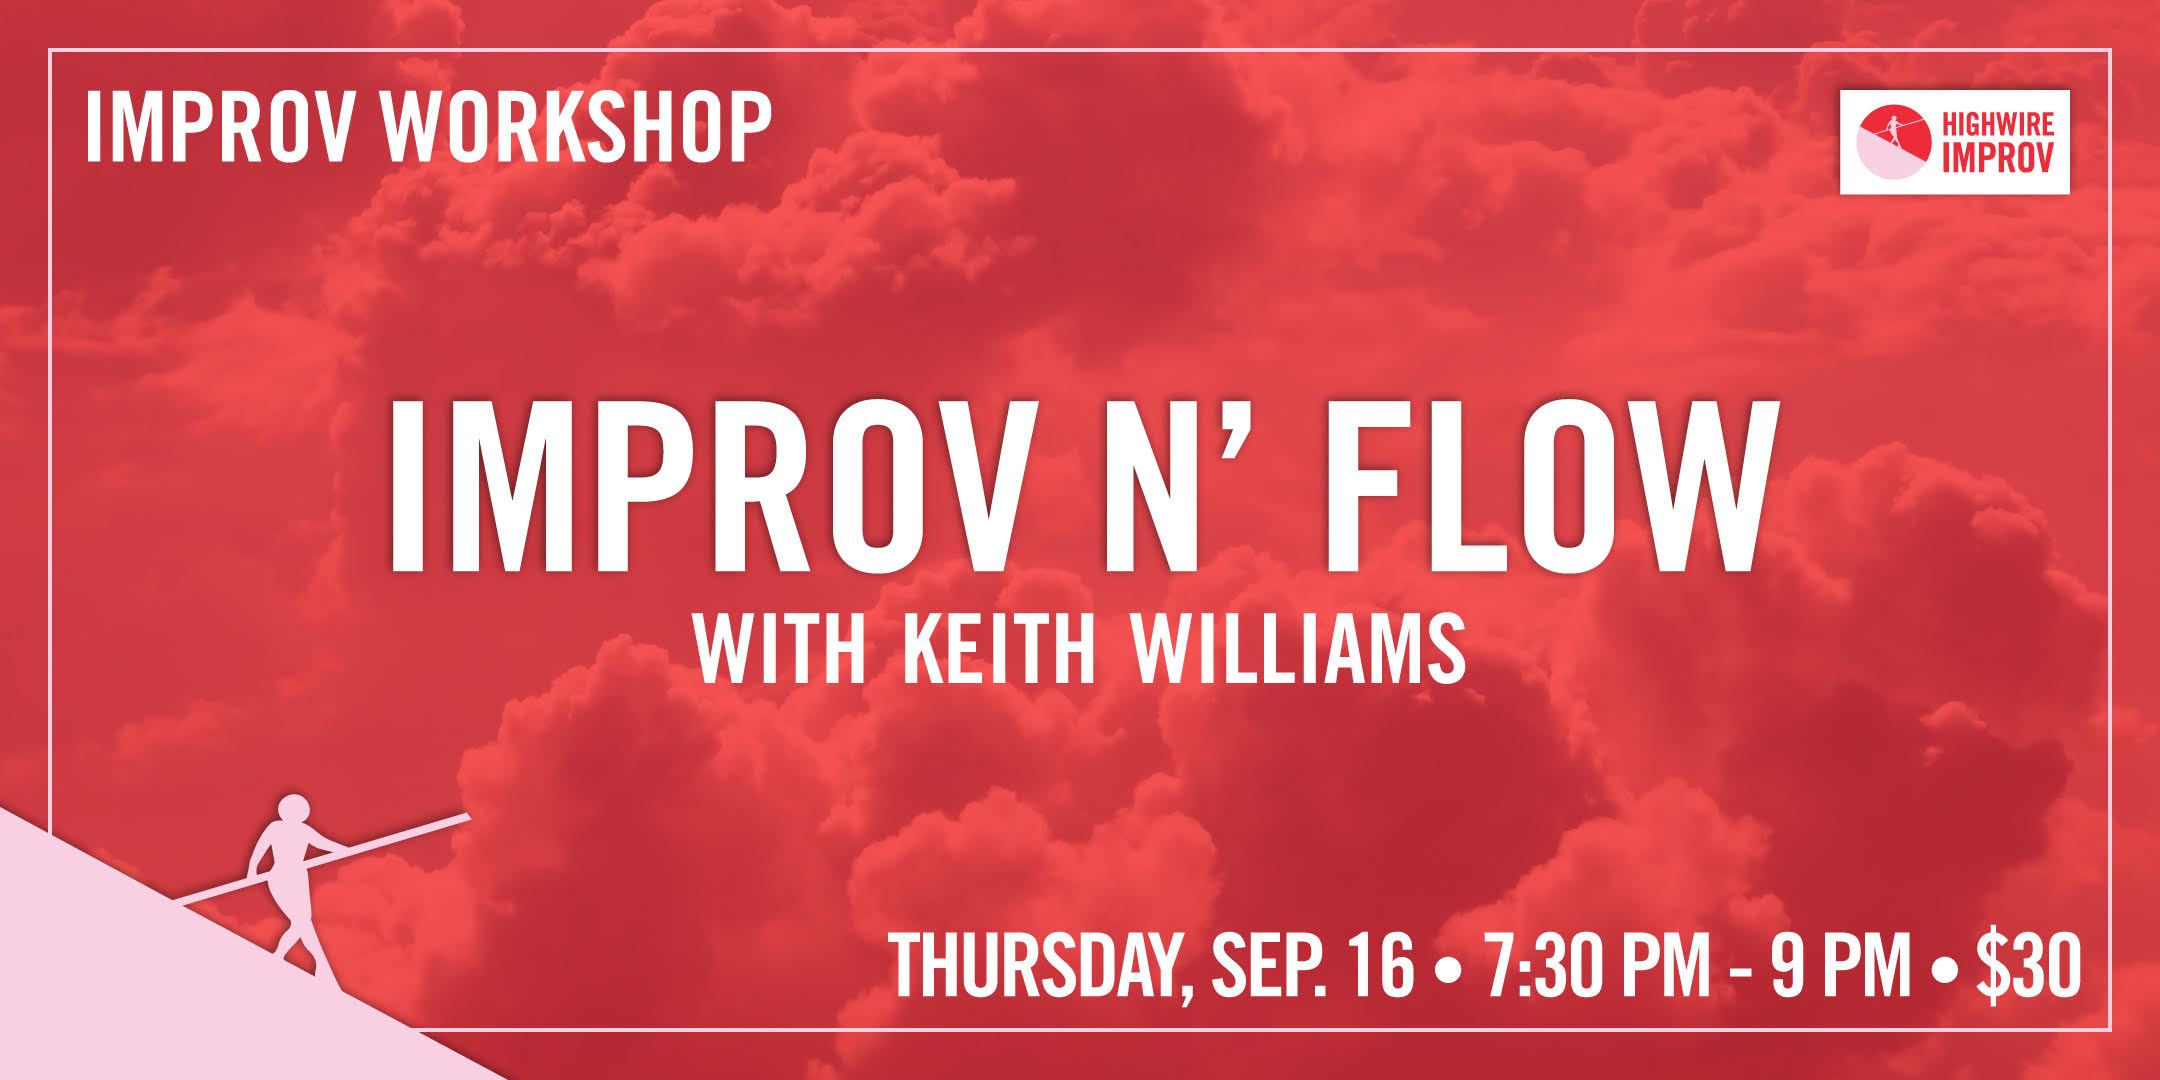 Improv N' Flow with Keith Williams